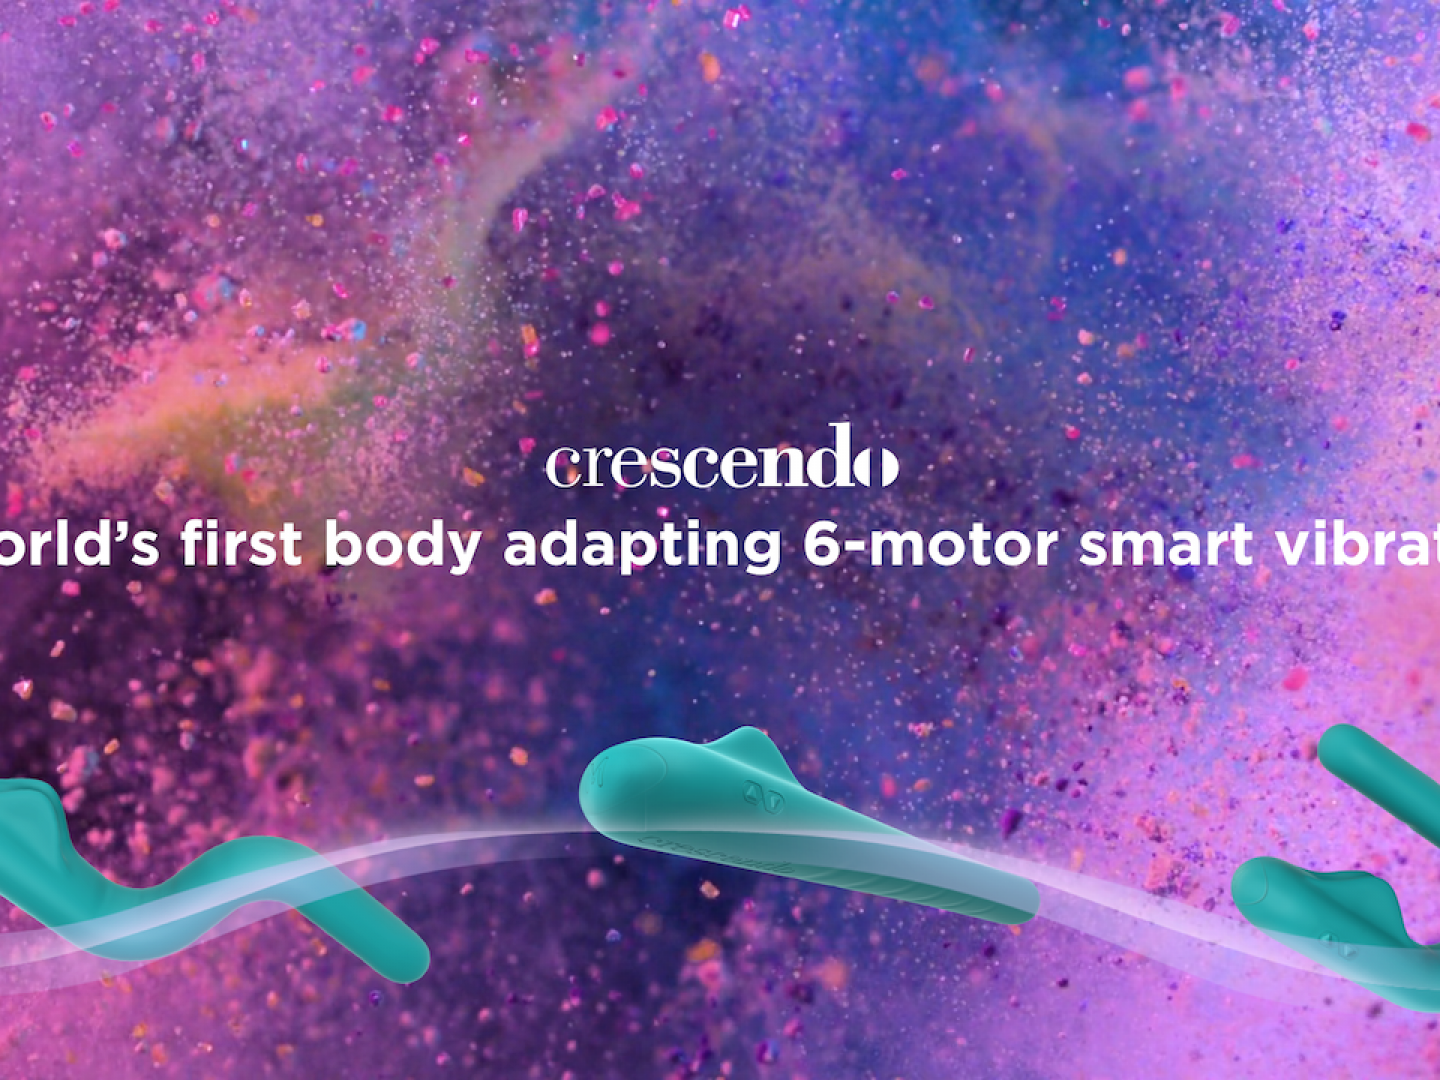 Crescendo - the world's first body-adapting smart vibrator Thumbnail